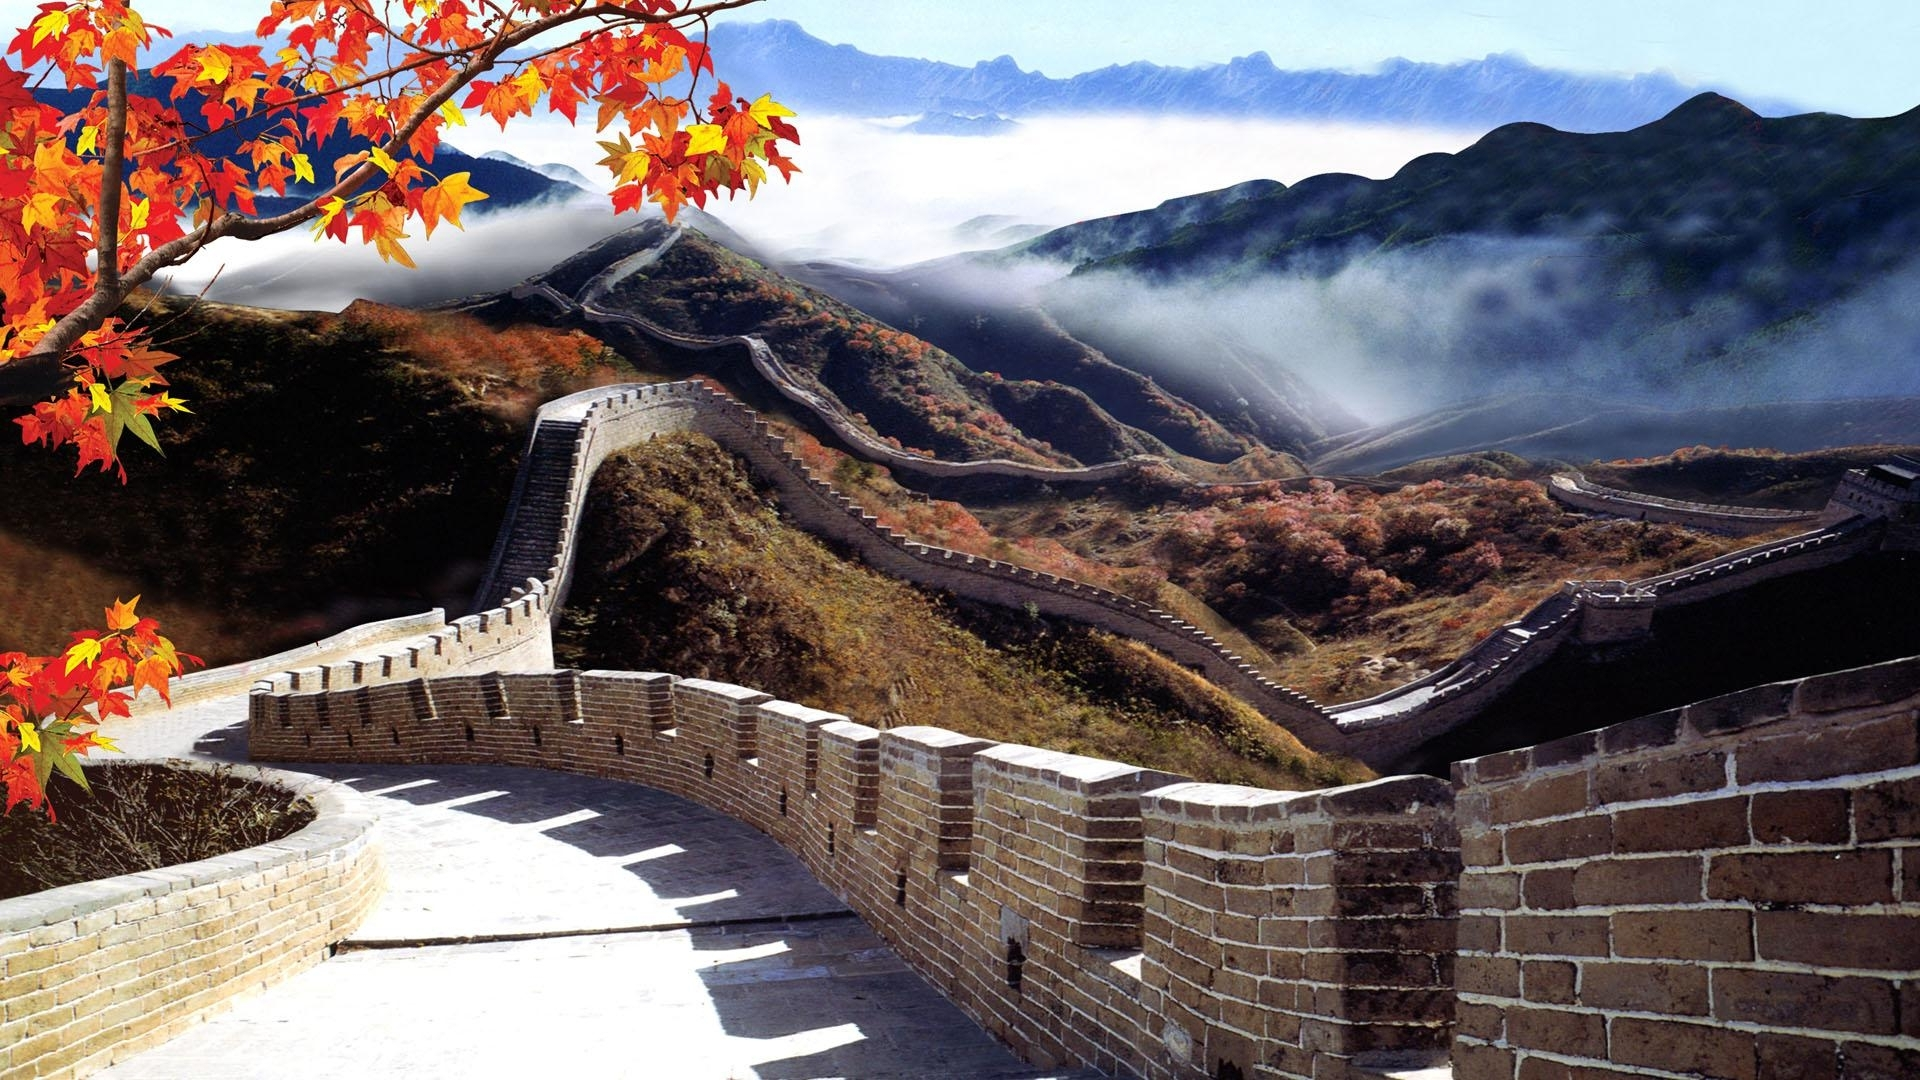 Great Wall Of China Wallpapers, Top Rated High Hd Quality Great Throughout Well Known Great Wall Of China 3D Wall Art (View 11 of 15)